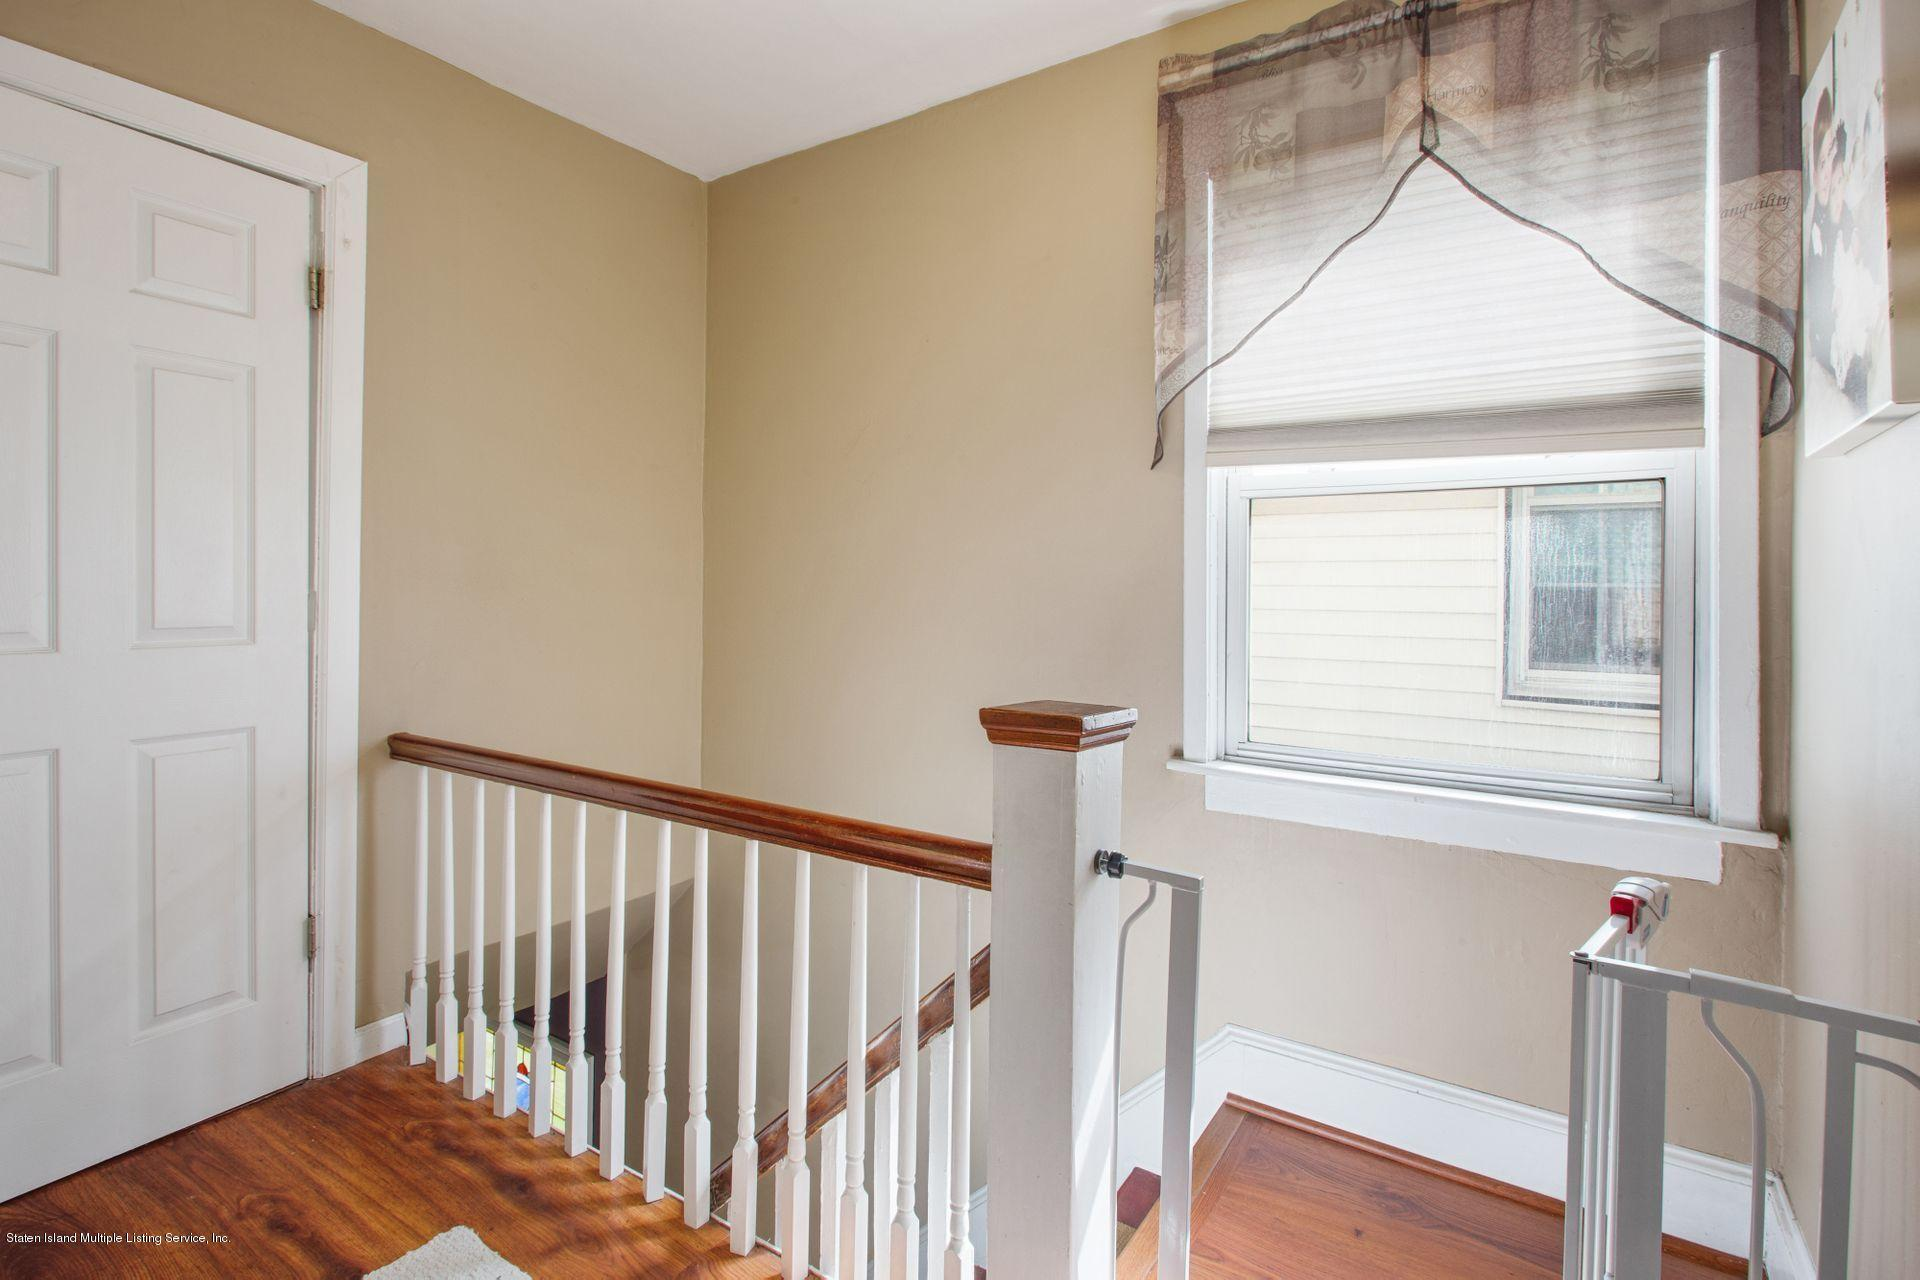 Single Family - Detached 252 Waters Avenue  Staten Island, NY 10314, MLS-1128050-17